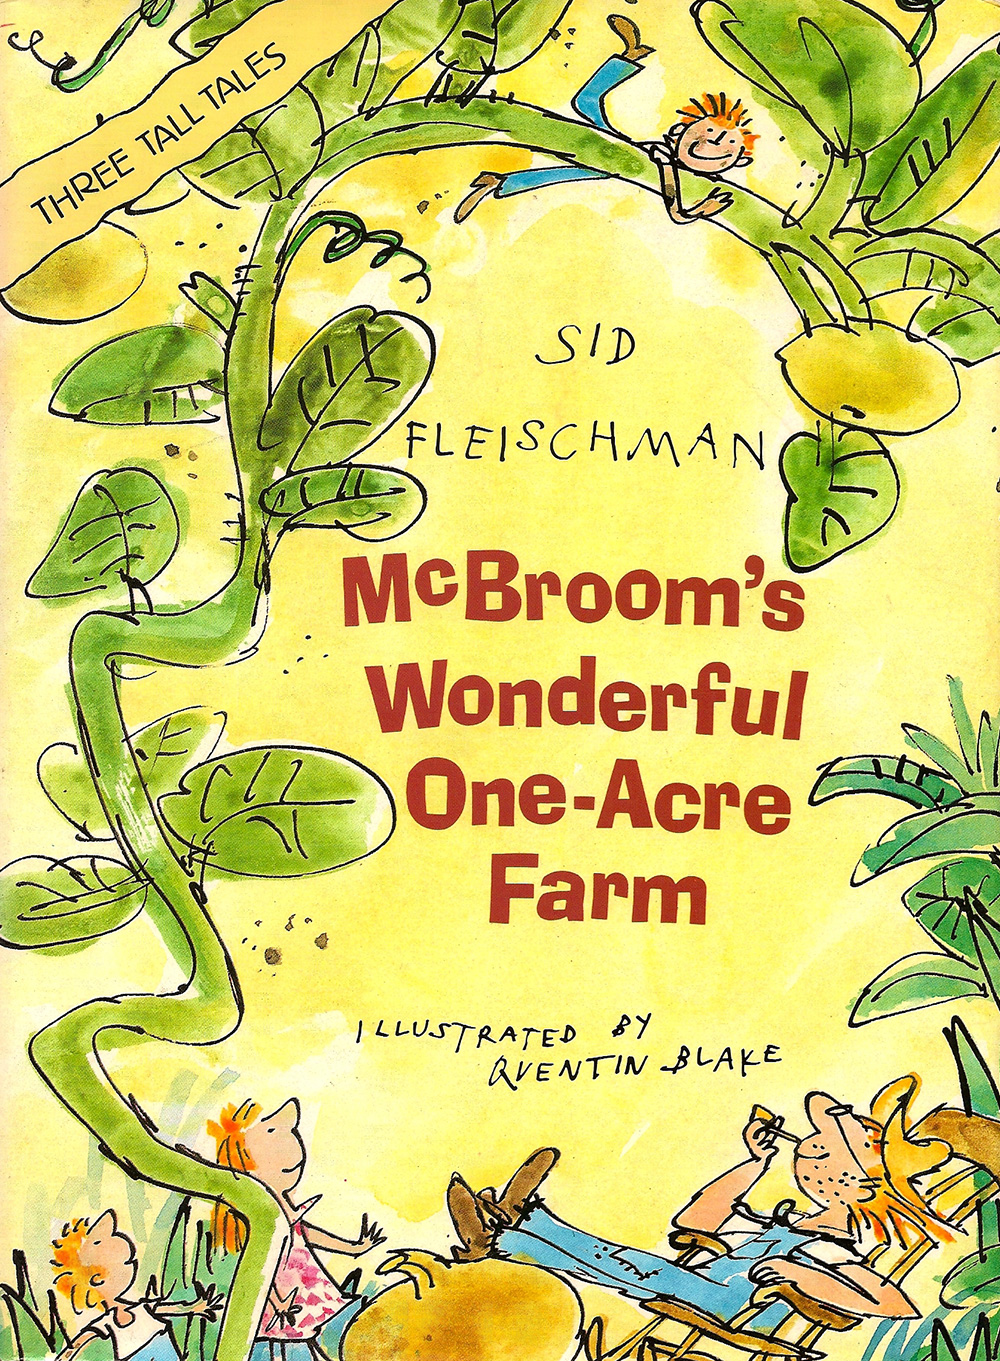 McBroom's Wonderful One-Acre Farm - This collection, with Quentin Blake illustrations, is comprised of three stories: McBroom Tells the Truth, McBroom and the Big Wind, and McBroom's Ear.